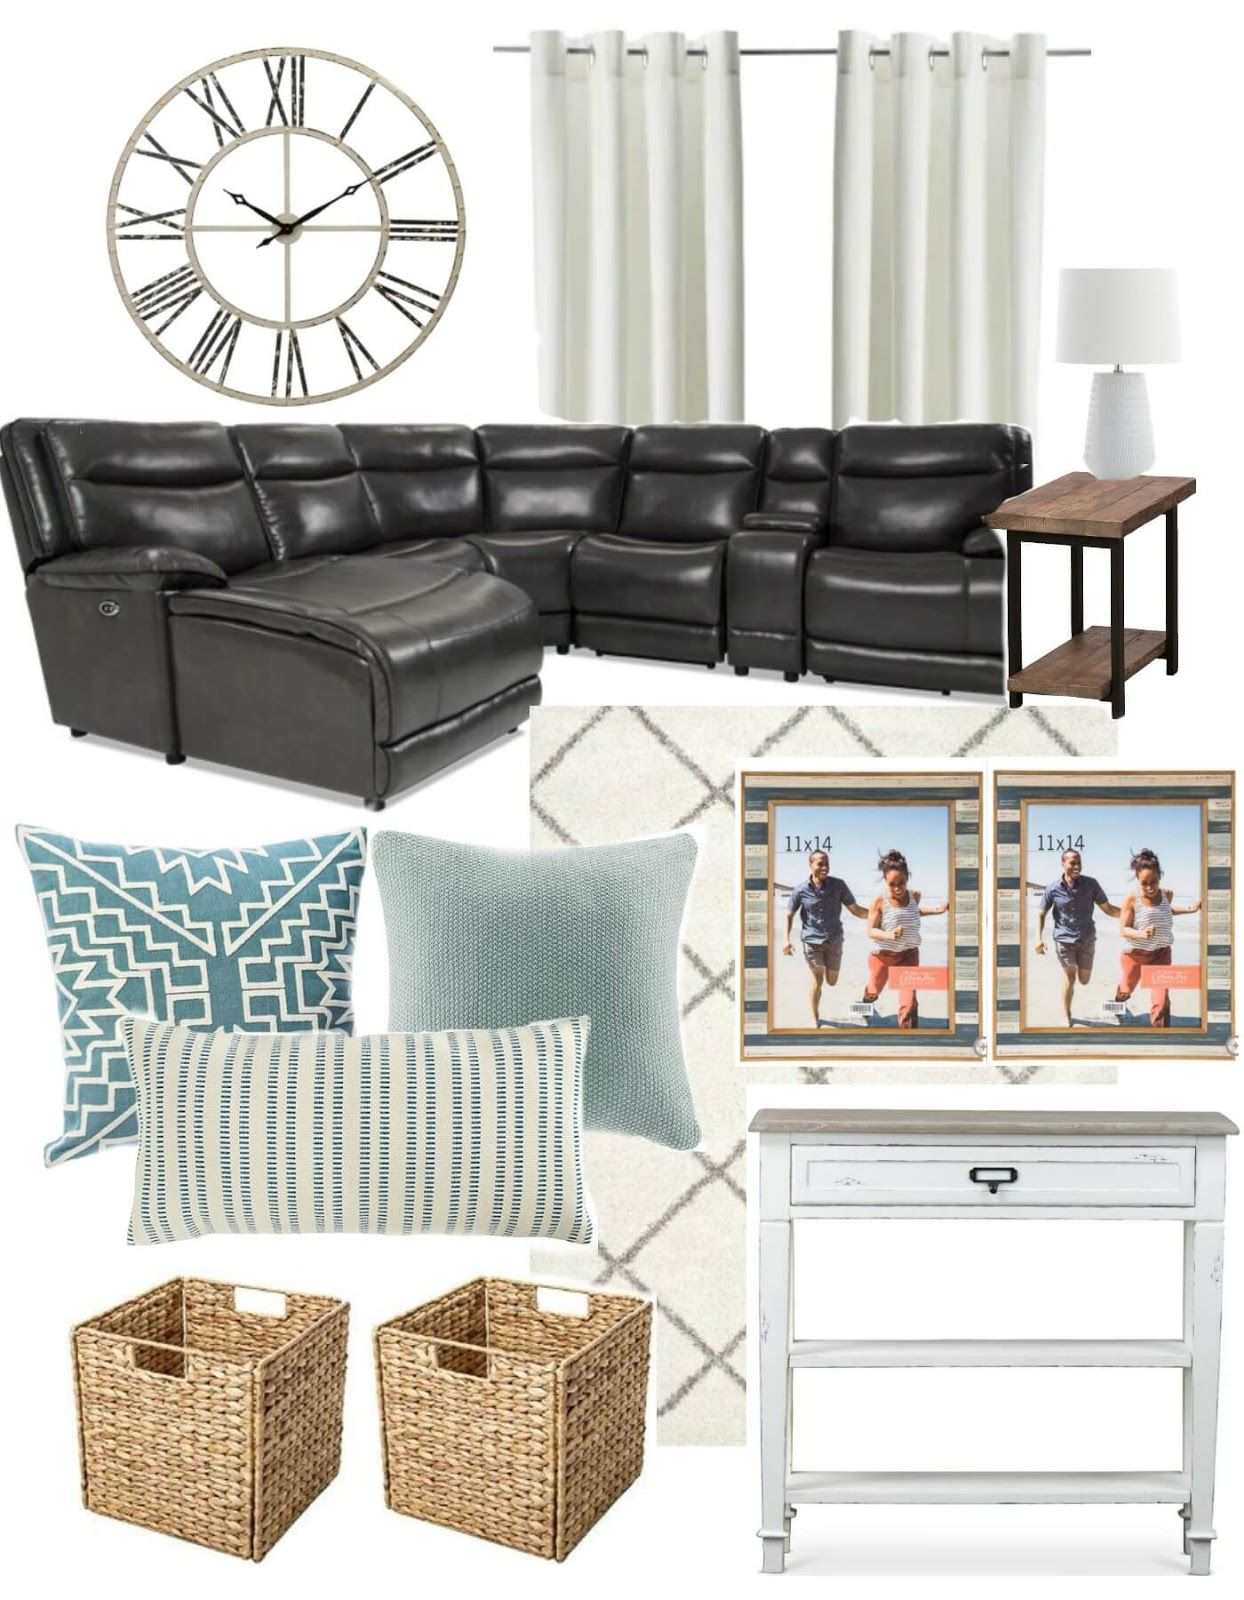 Decorating Around A Leather Couch Leather Couches Living Room